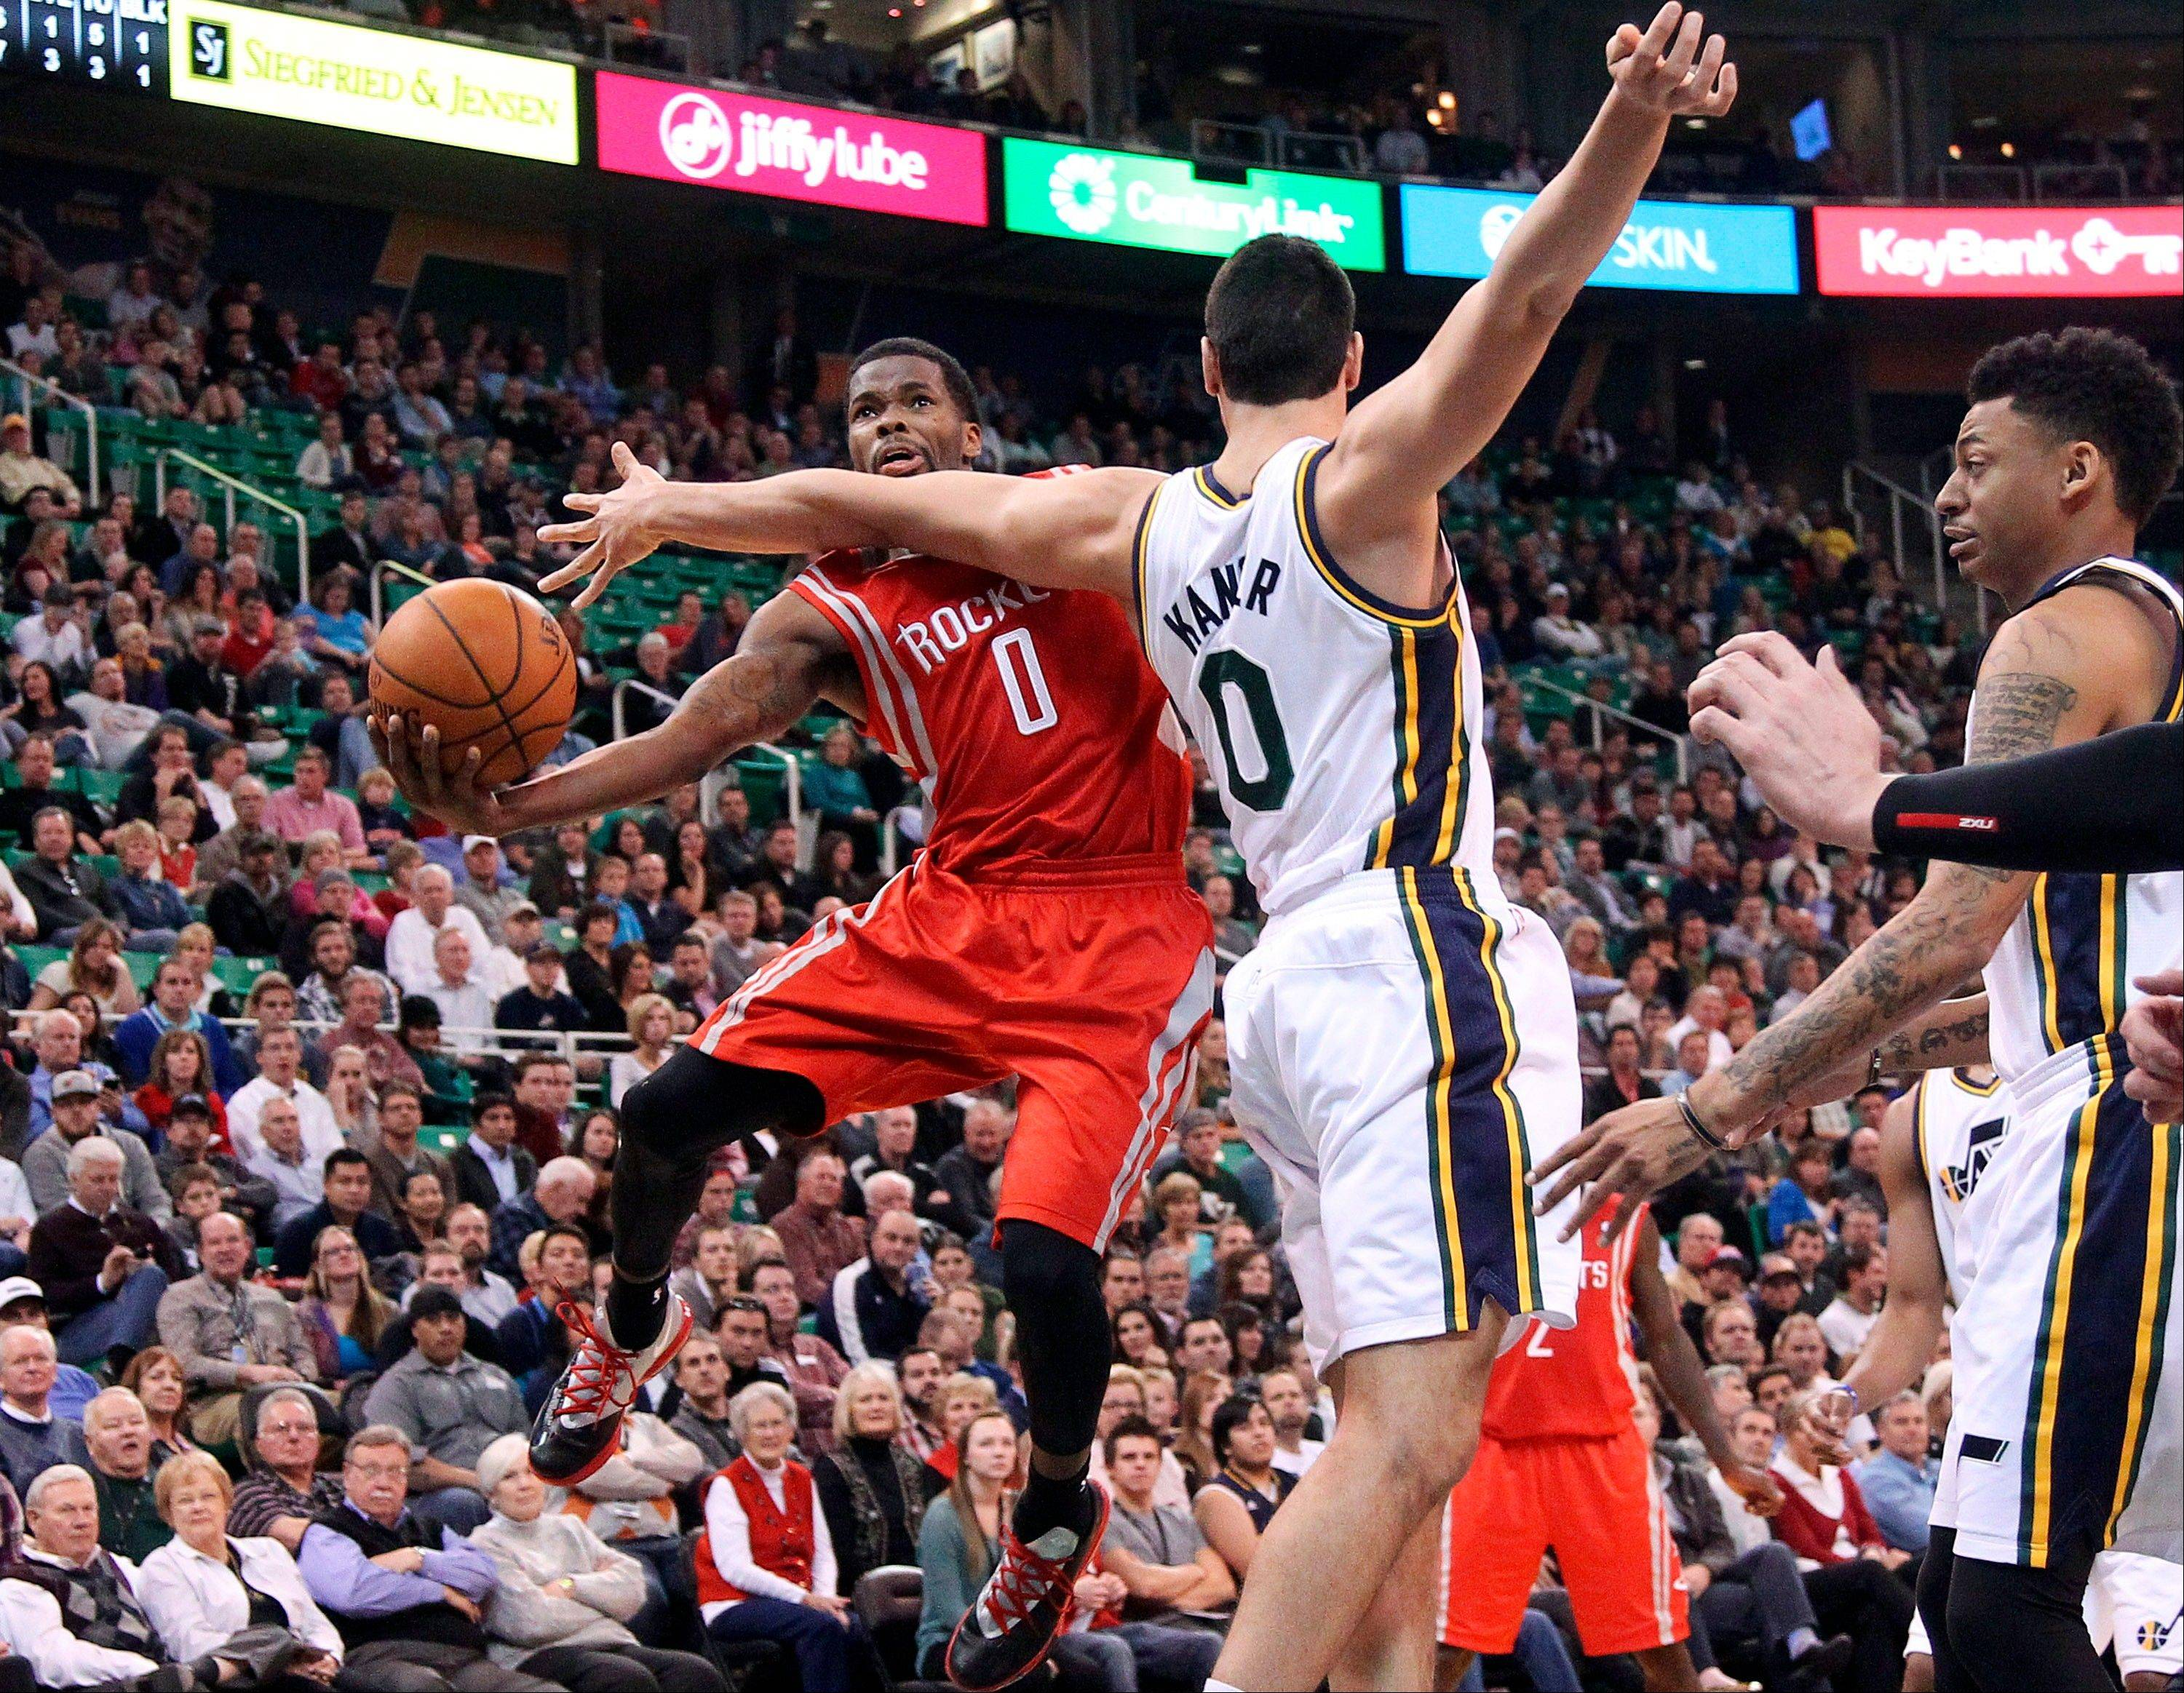 Houston Rockets' Aaron Brooks, left, goes to the basket as Utah Jazz's Enes Kanter (0) defends in the second quarter of an NBA basketball game Monday in Salt Lake City.